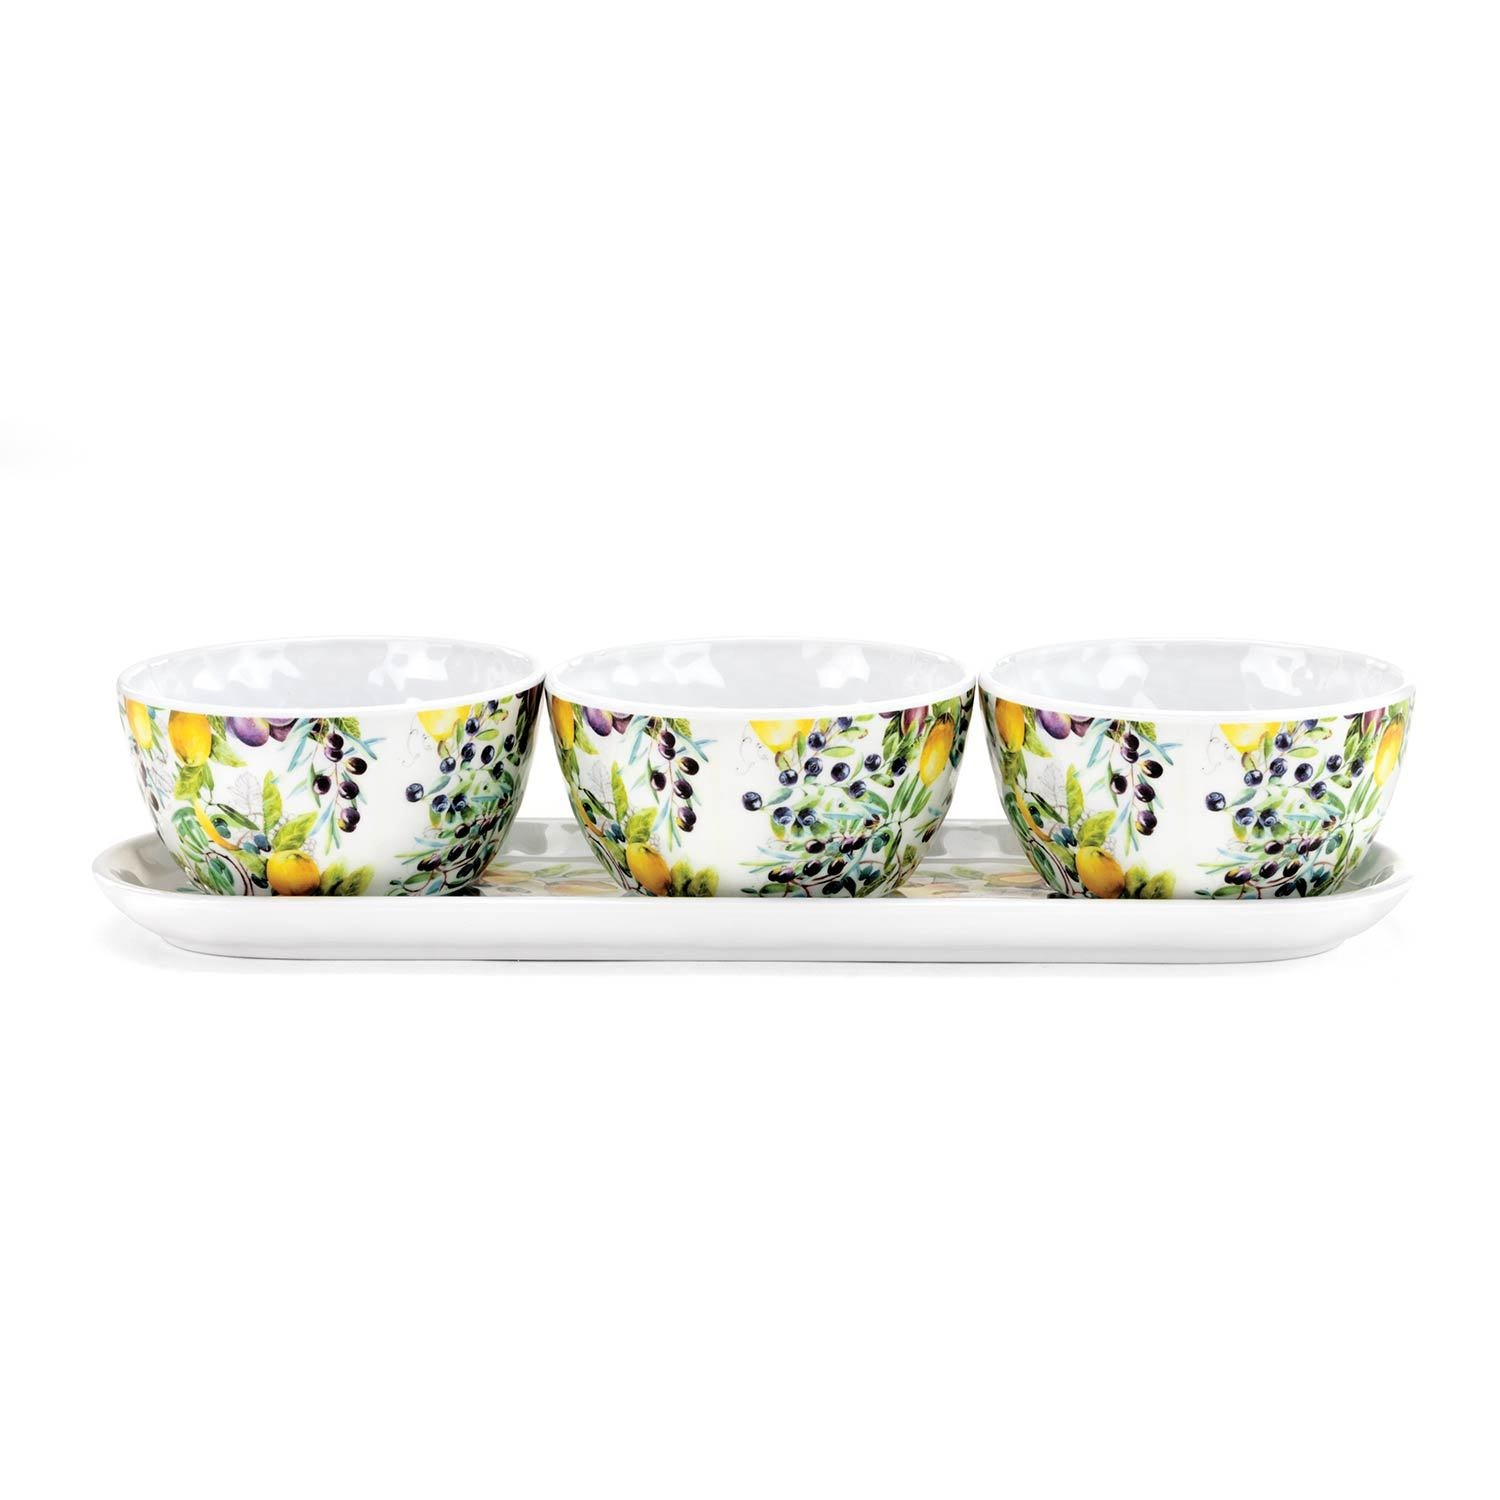 Tuscan Grove Melamine Condiment Set